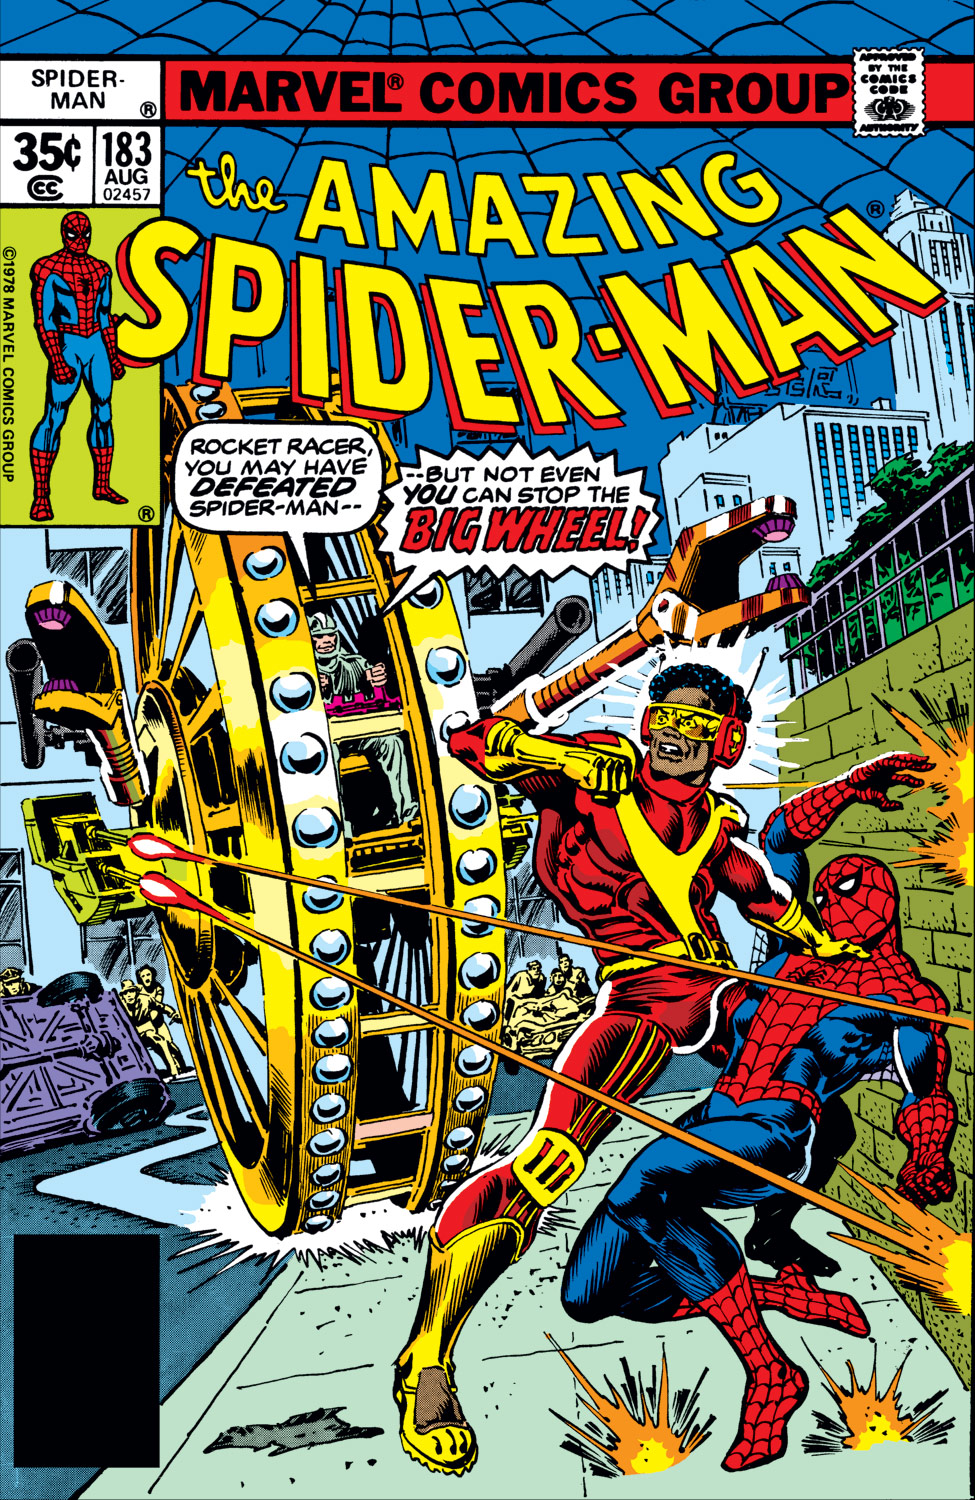 The Amazing Spider-Man (1963) #183